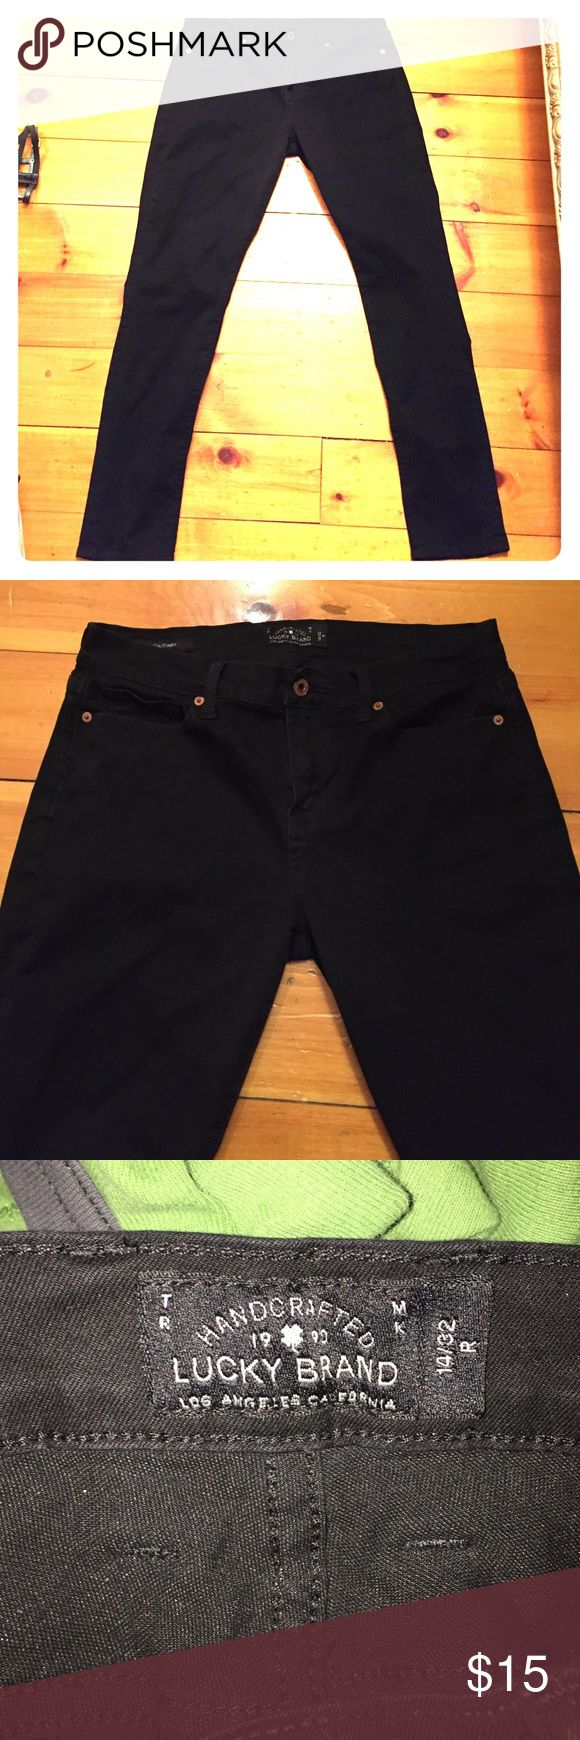 Lucky jeans size 14 / 32 Sofía skinny lucky jeans see last picture for details Lucky Brand Jeans Skinny